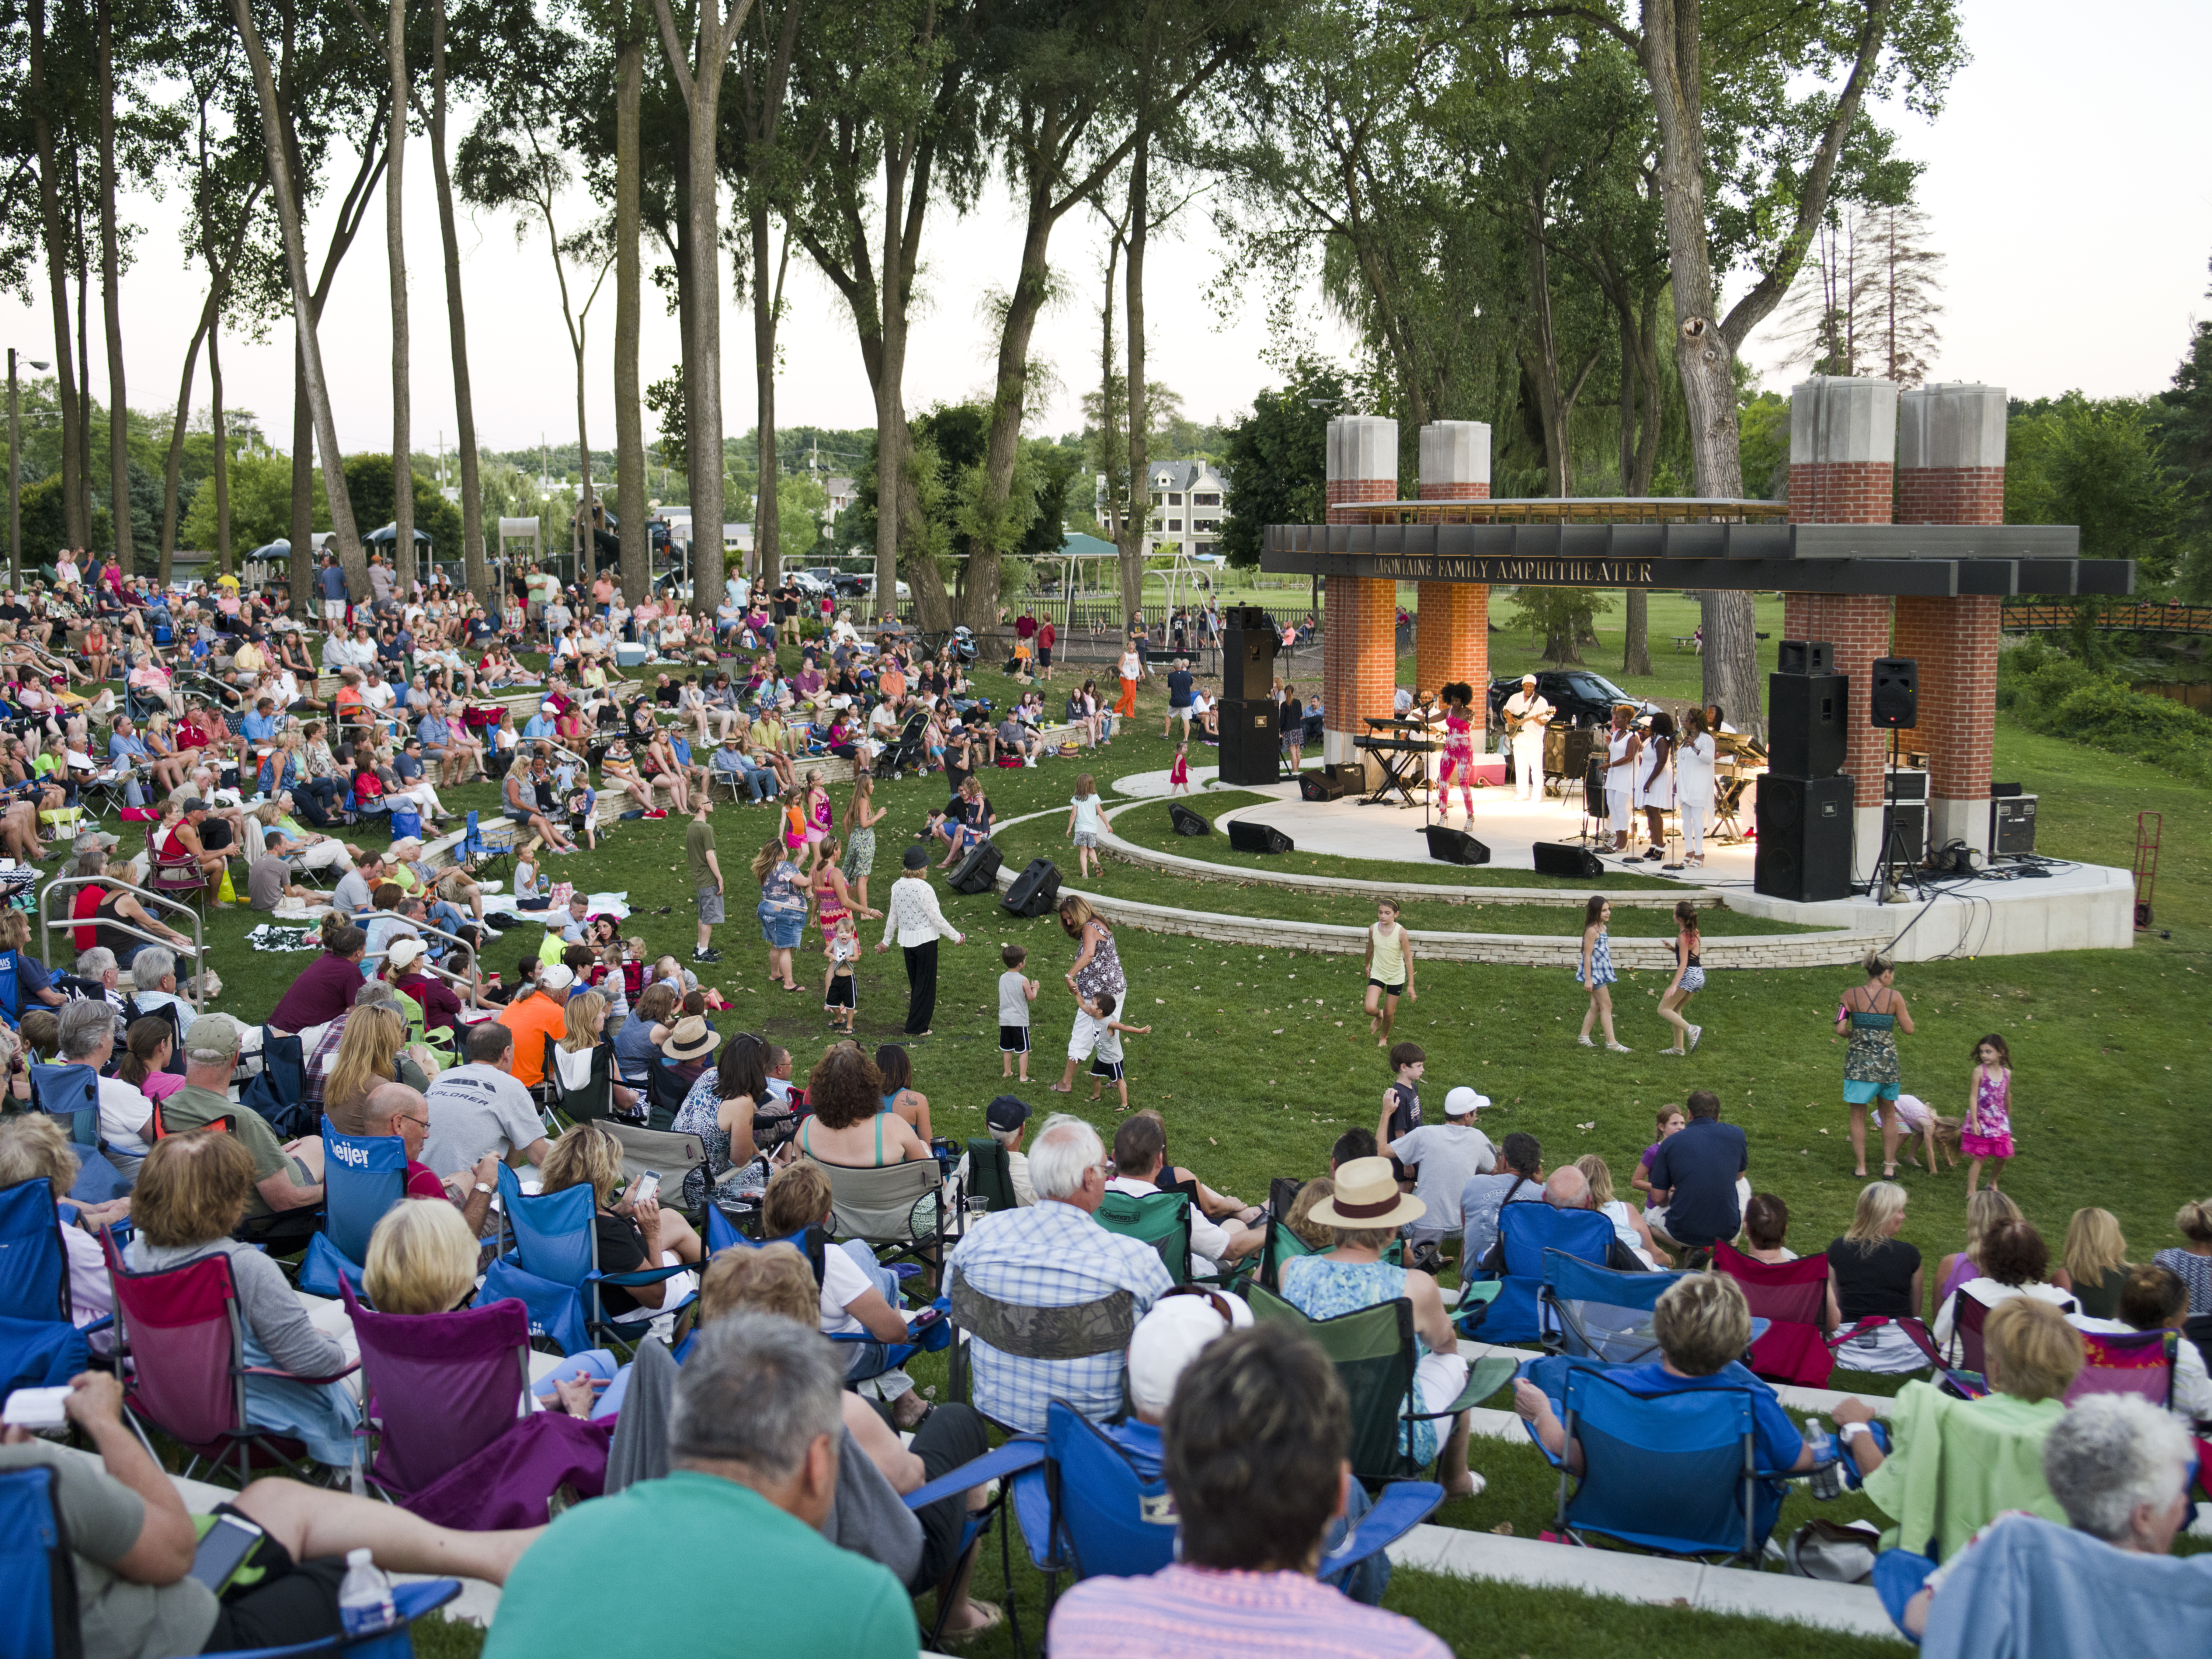 Visitors enjoying a concert outside at Milford Amphitheater.